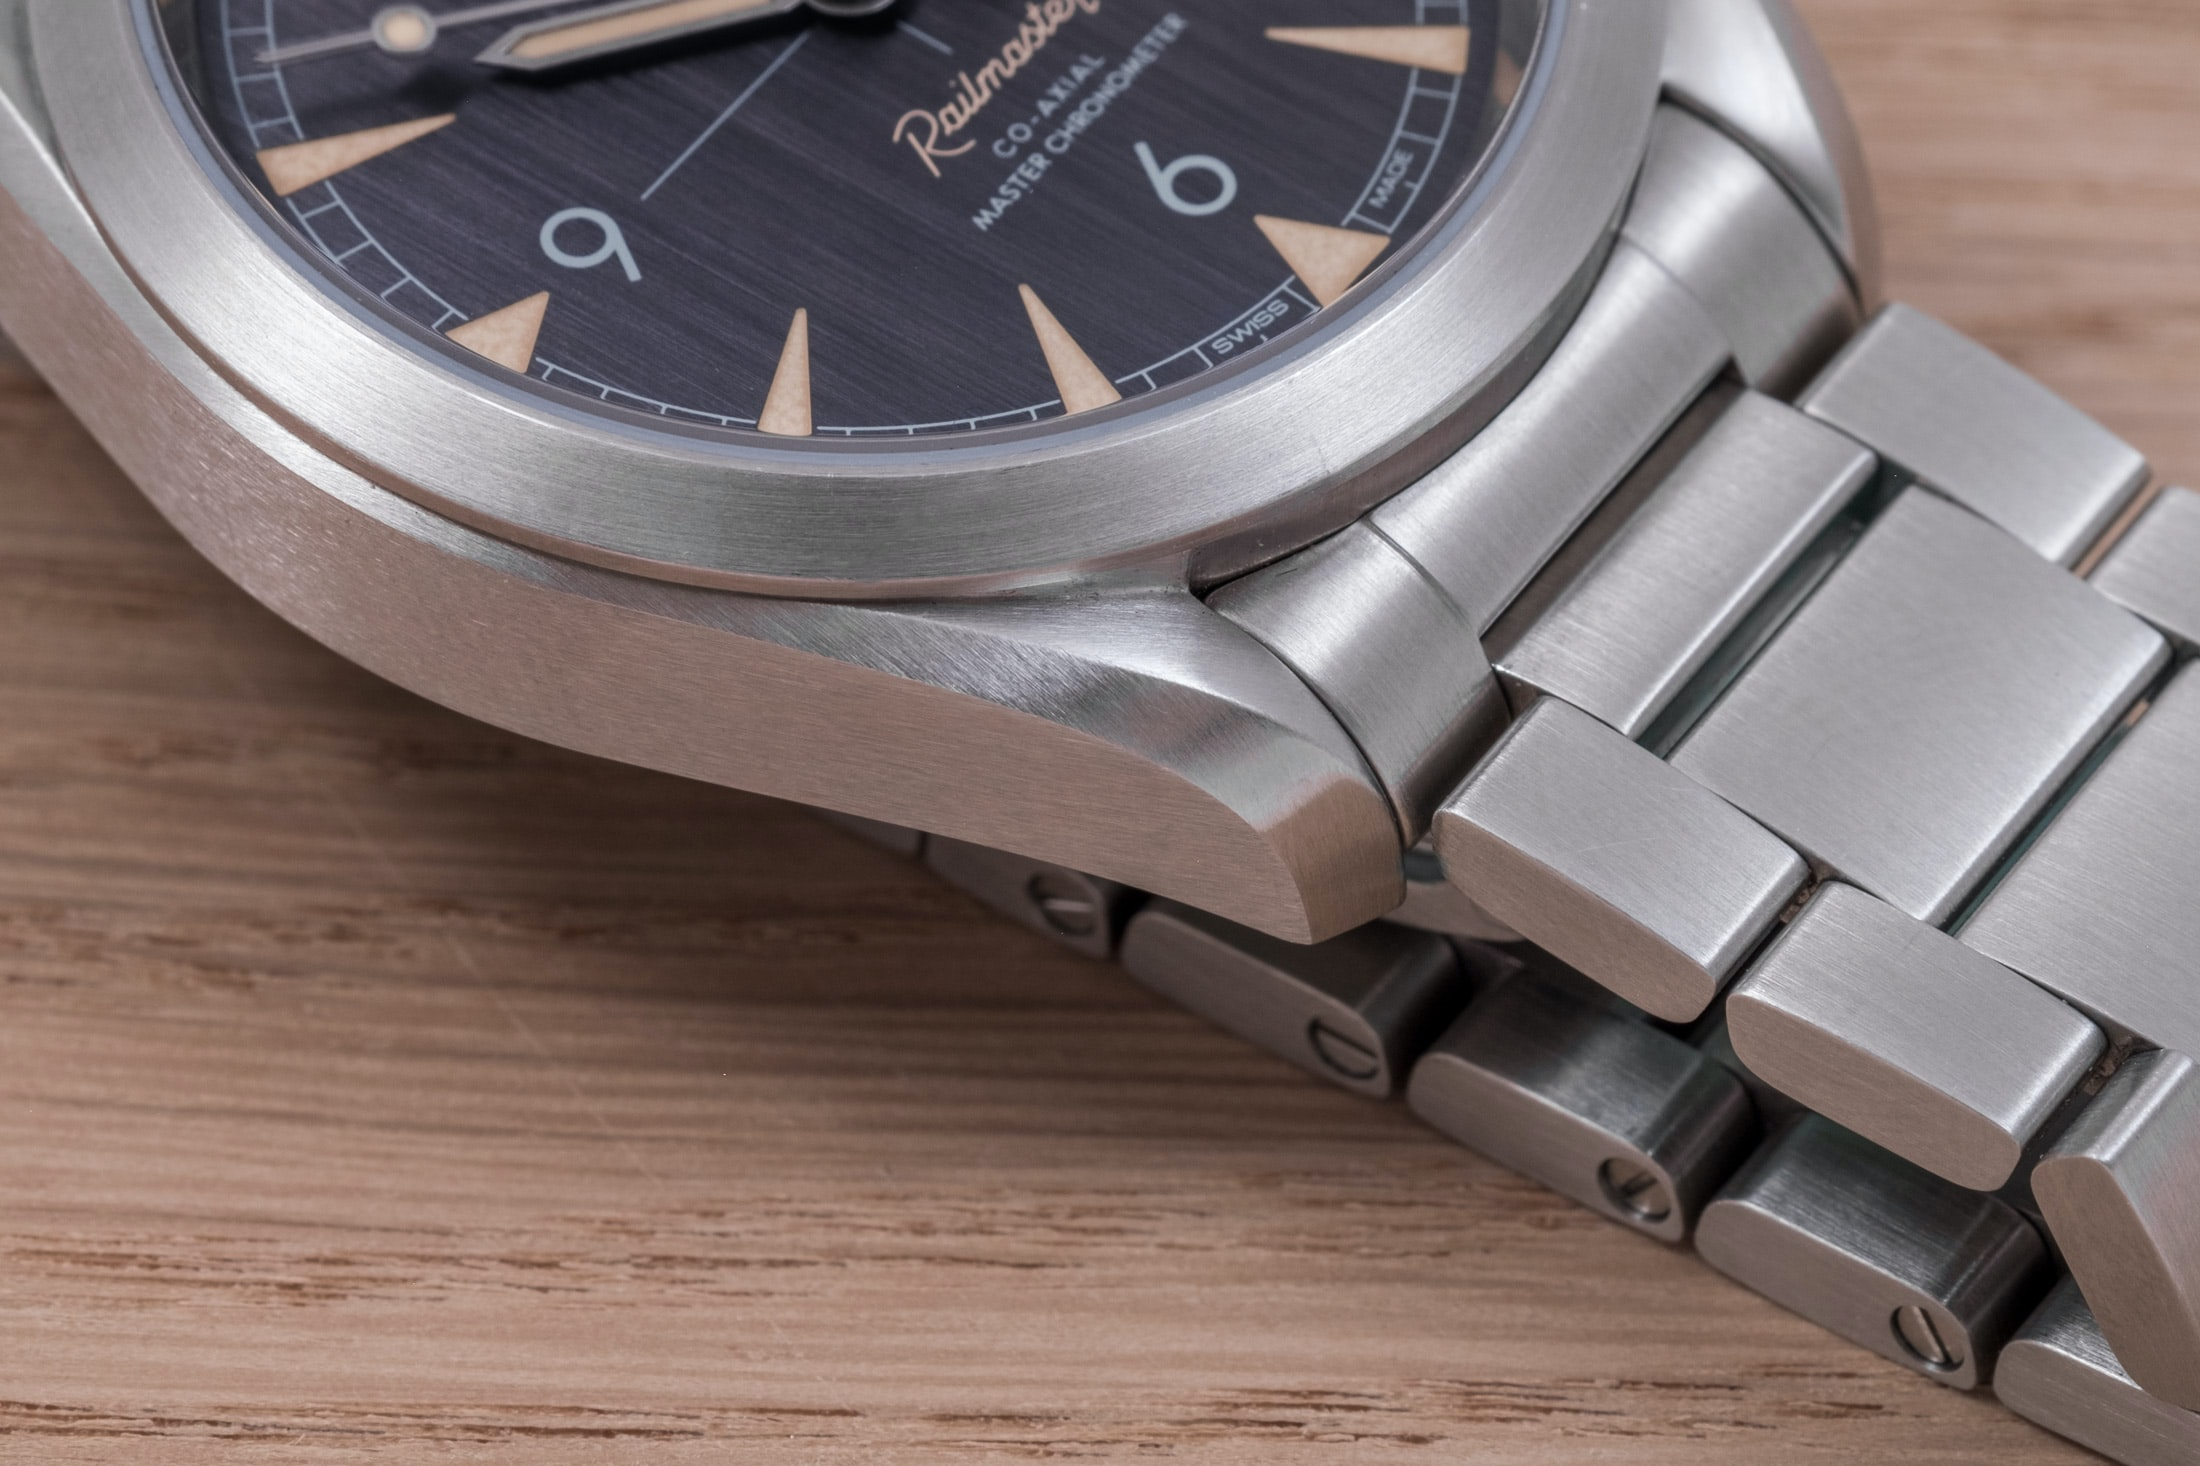 A Week On The Wrist: The Omega Seamaster Railmaster A Week On The Wrist: The Omega Seamaster Railmaster DSCF6096